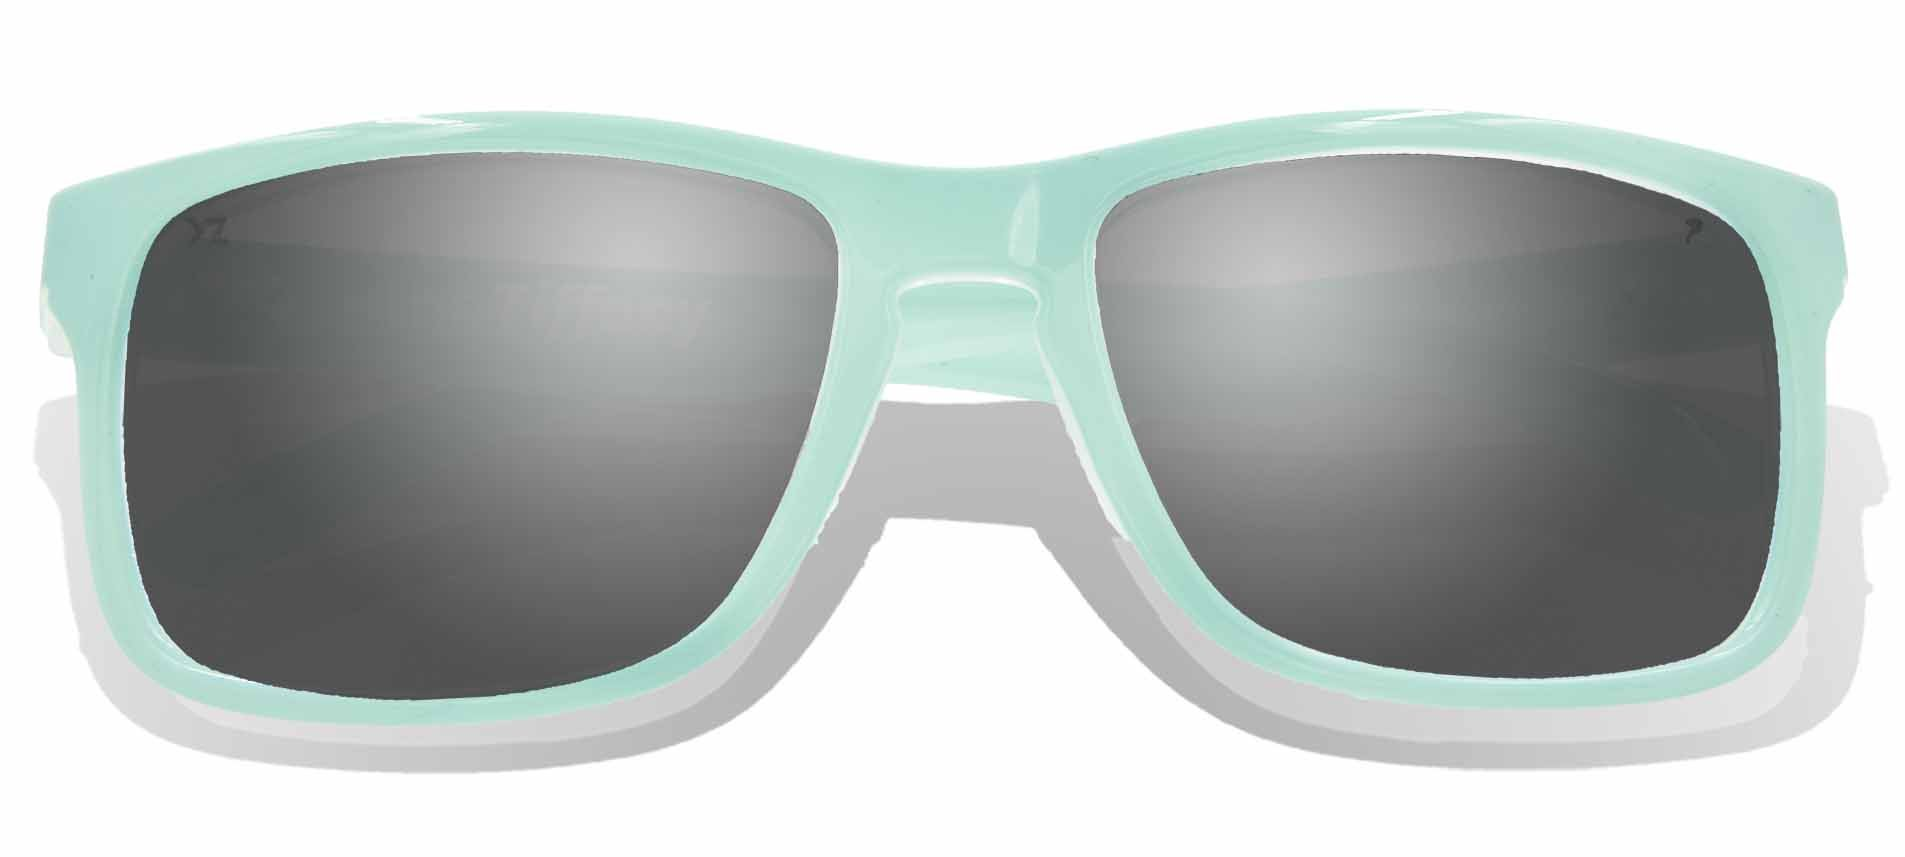 Floating Sunglasses - Polarized Floatable Wayfarer Shades by KZ Gear - 100% UV400 Lenses - Shades that Float - Modern Floatable Style (Glossy Light Blue Frame - Gradient Grey Lens)